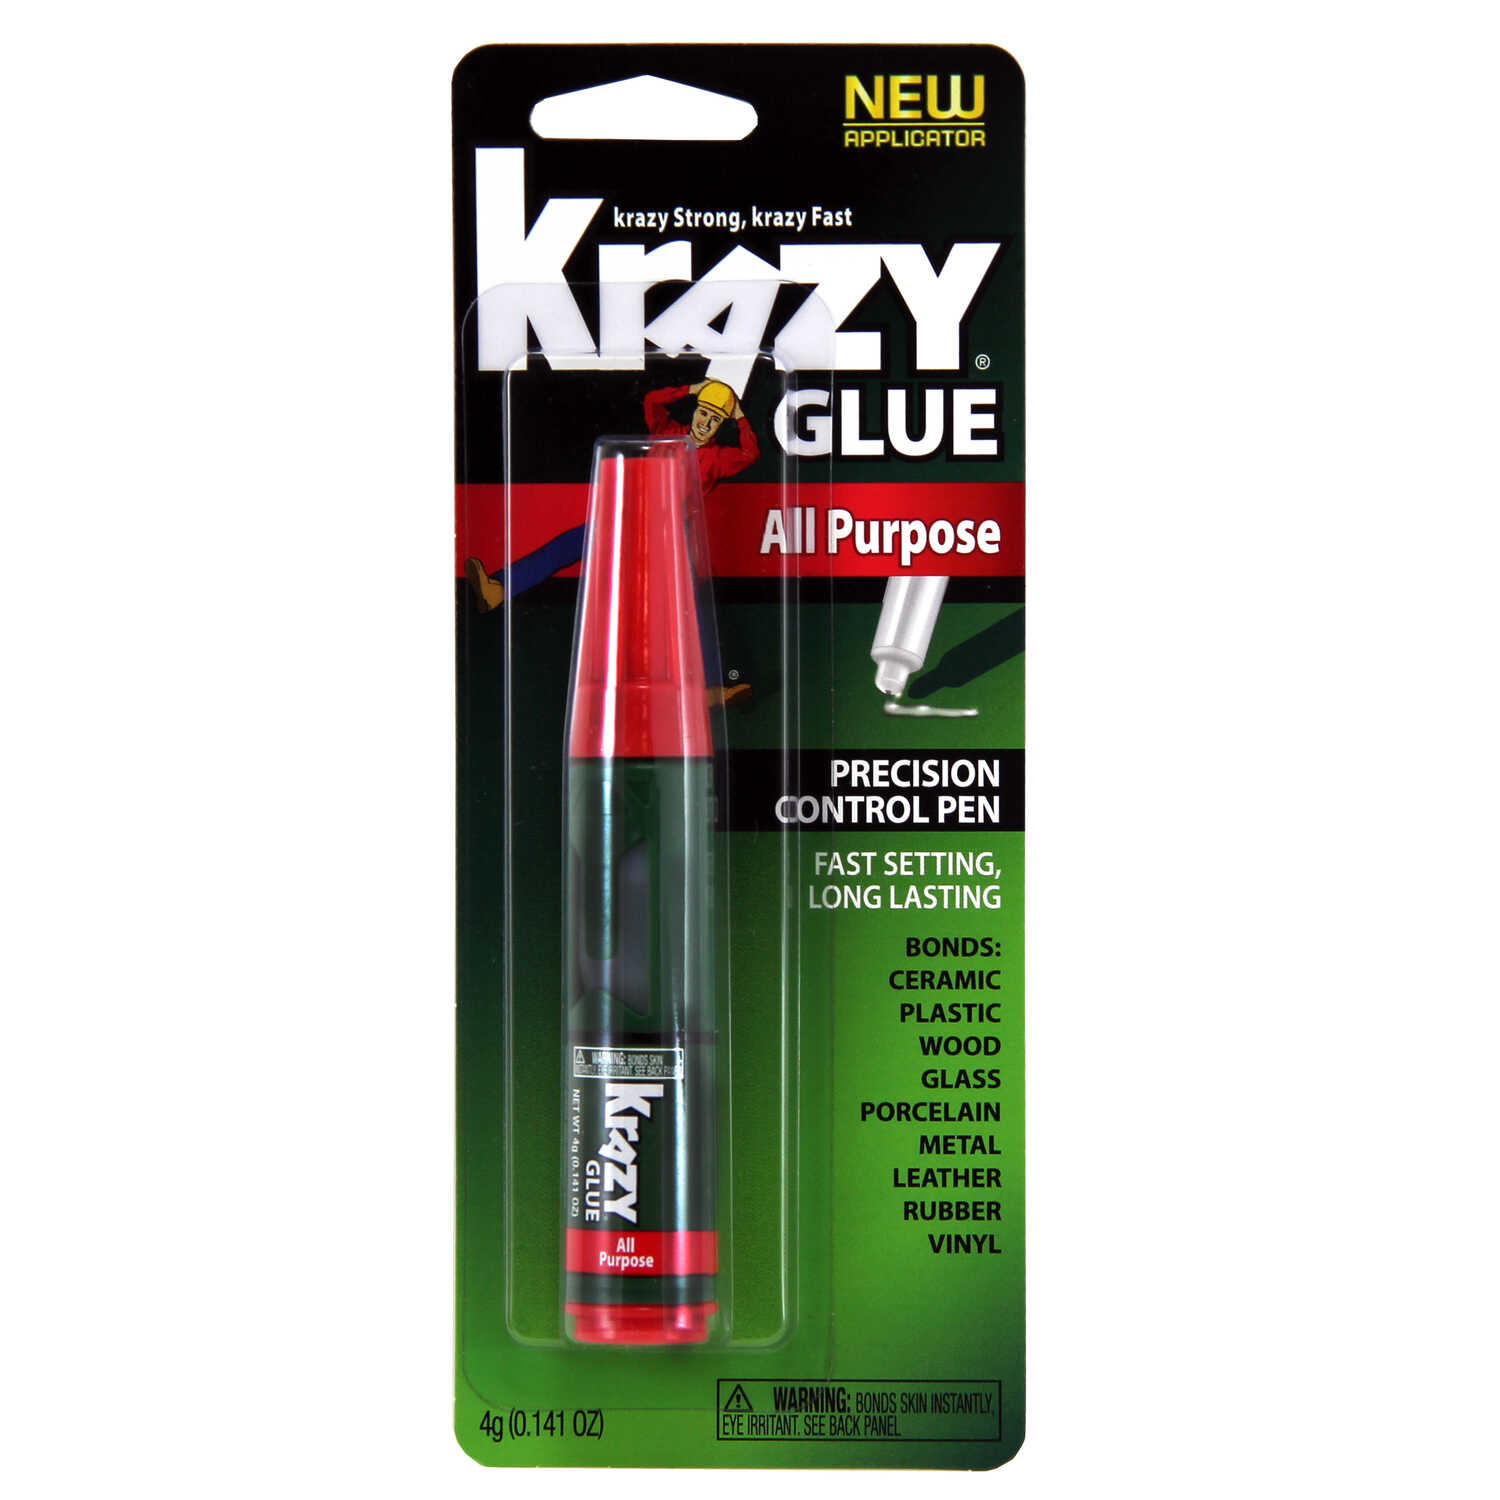 Krazy Glue  High Strength  Polyvinyl acetate homopolymer  All Purpose Super Glue  4